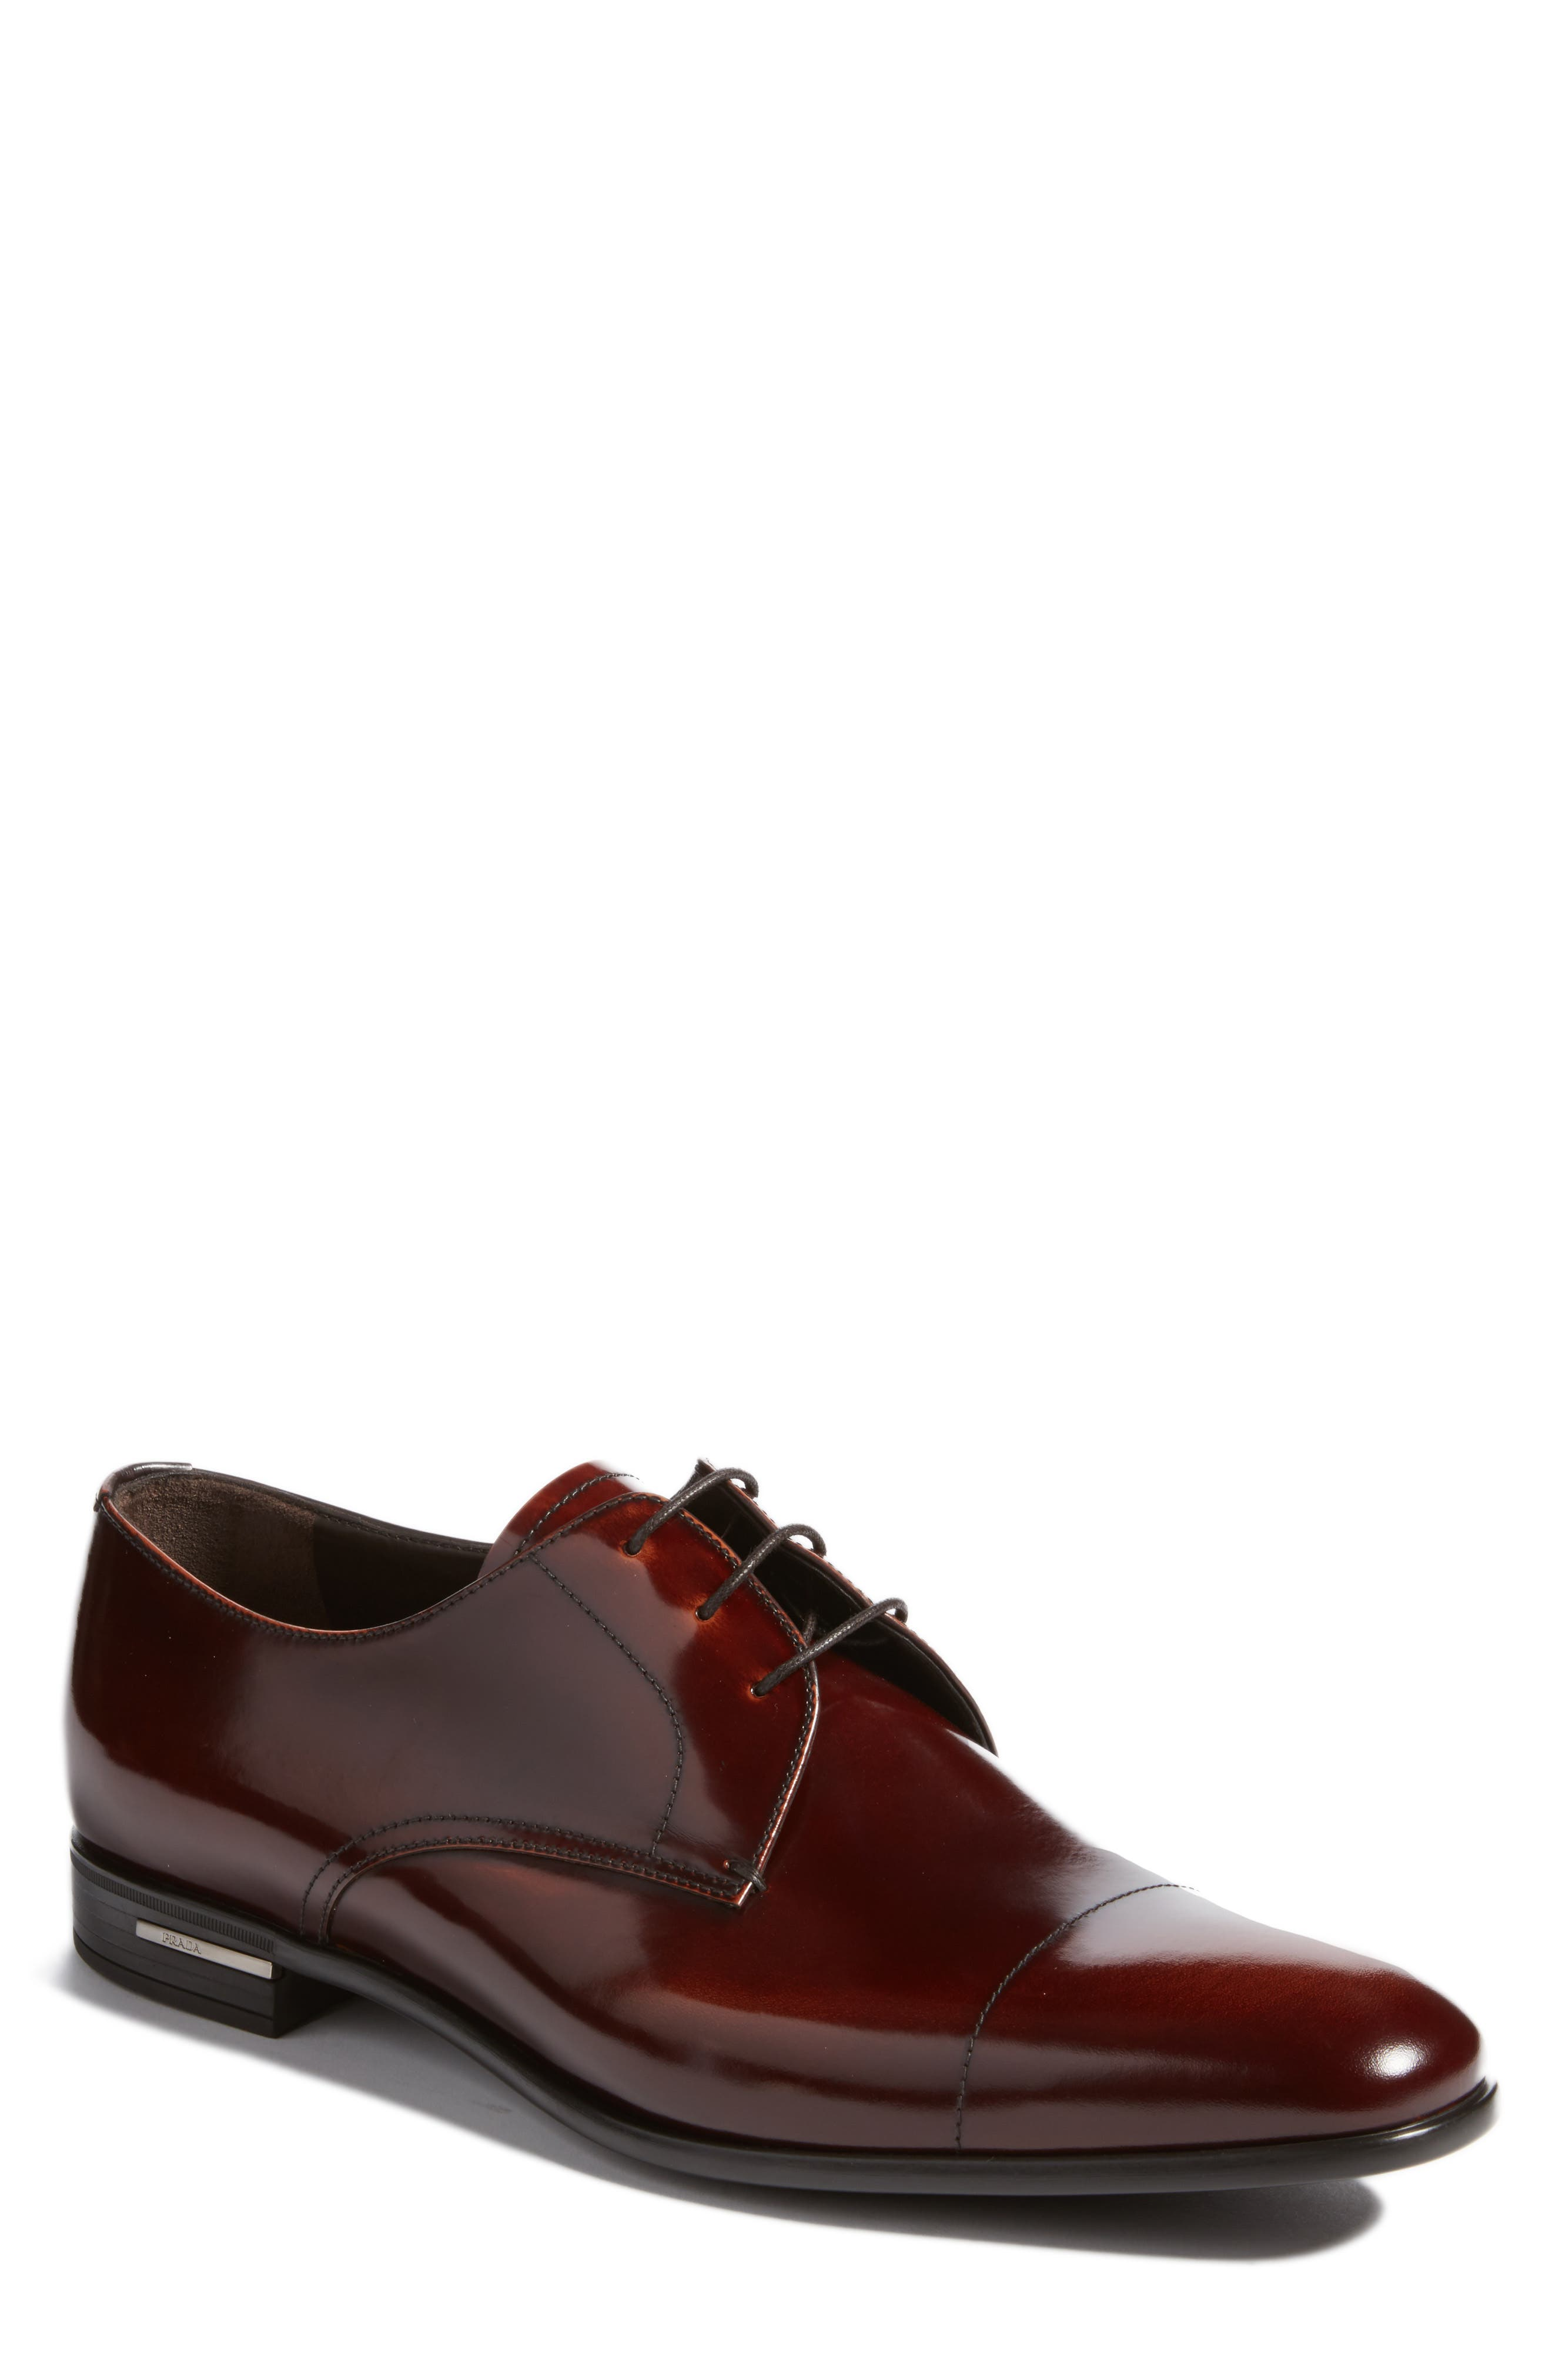 Prada Cap Toe Derby (Men)